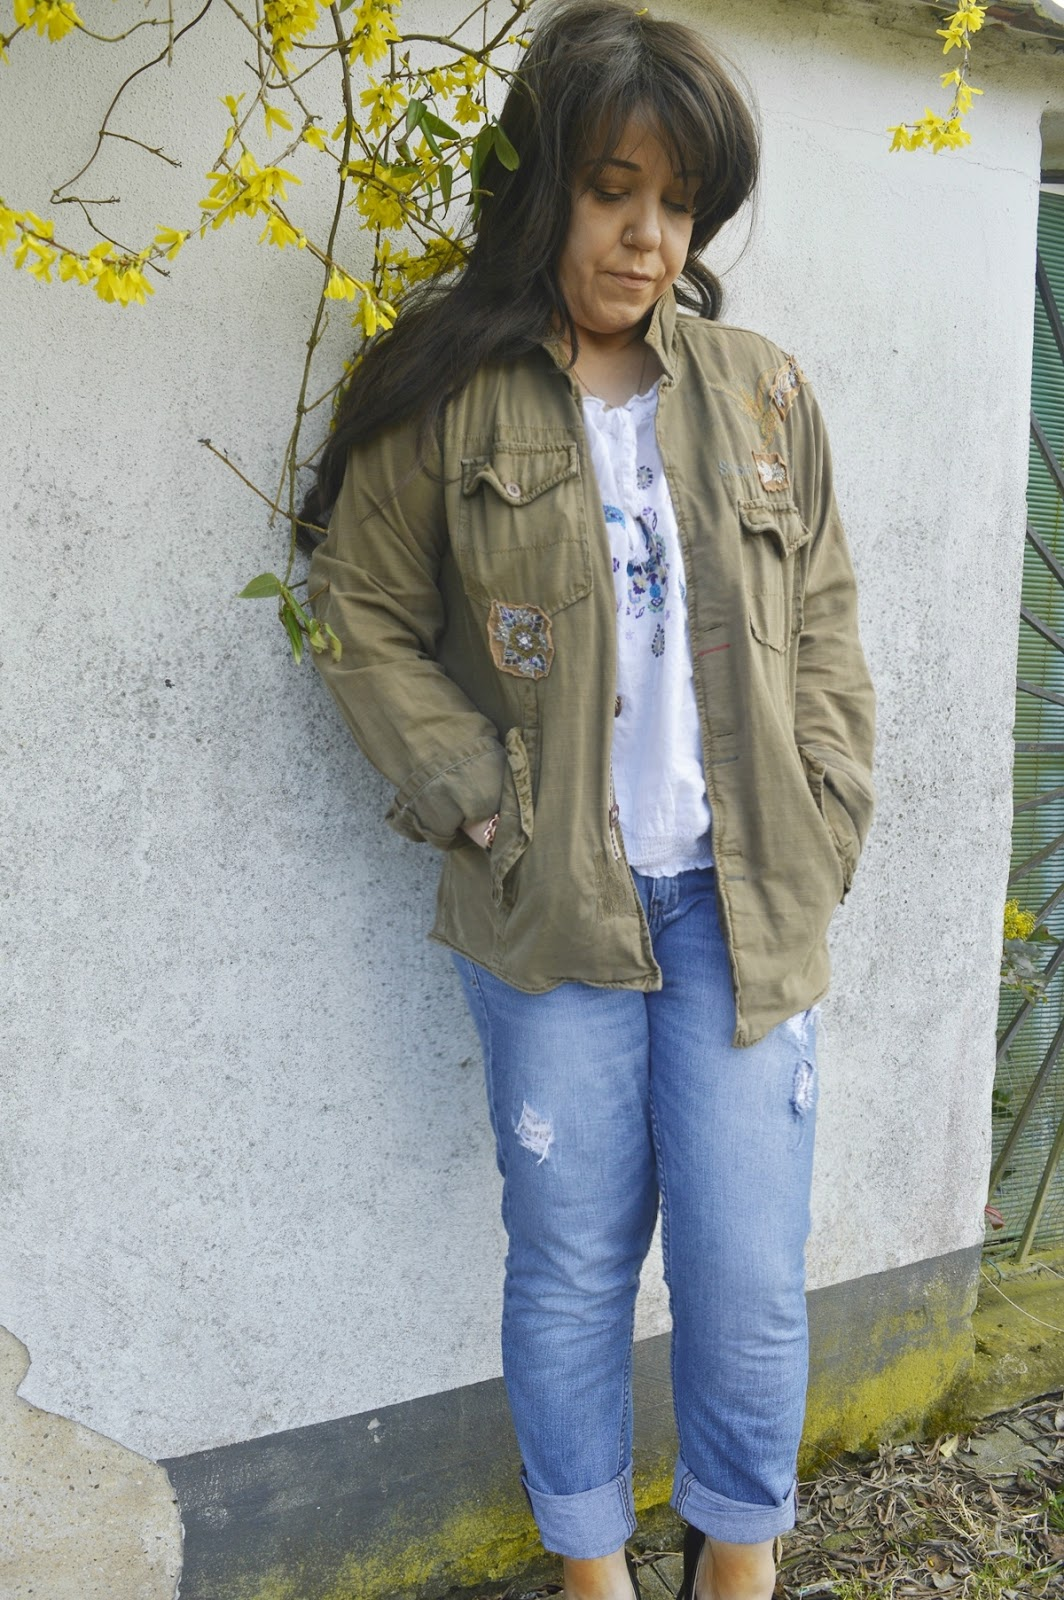 Boyfriend Jeans and Off-Shoulder Top with Military Jacket